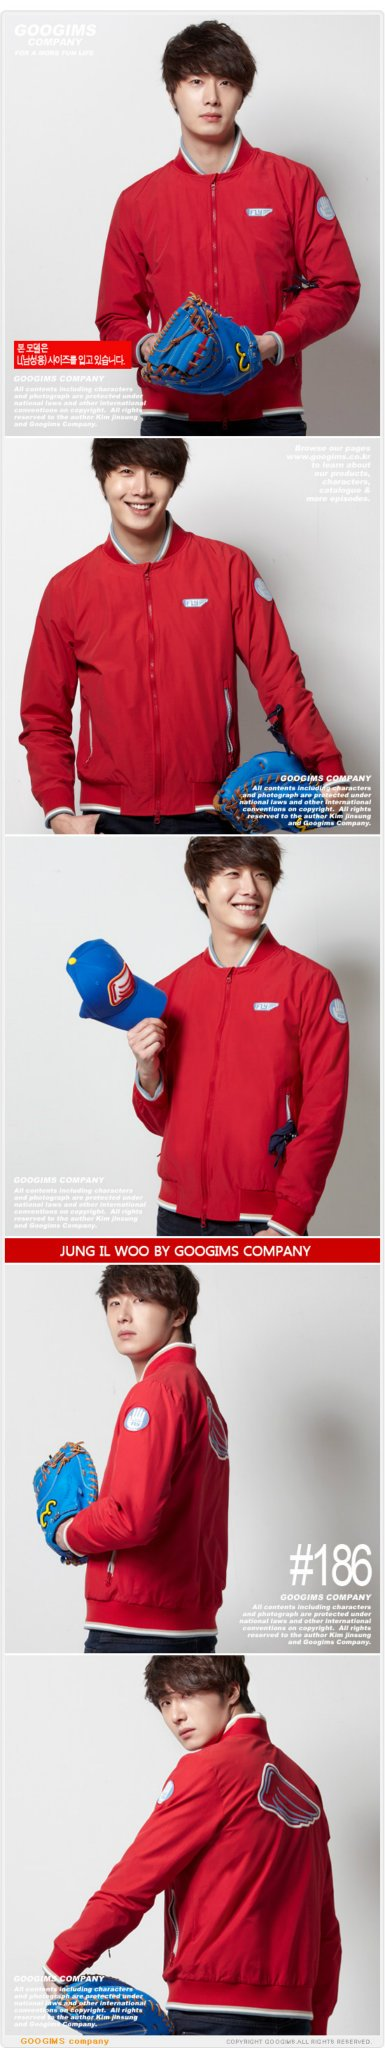 2011 10 Jung II-woo for Googims. Part 100005